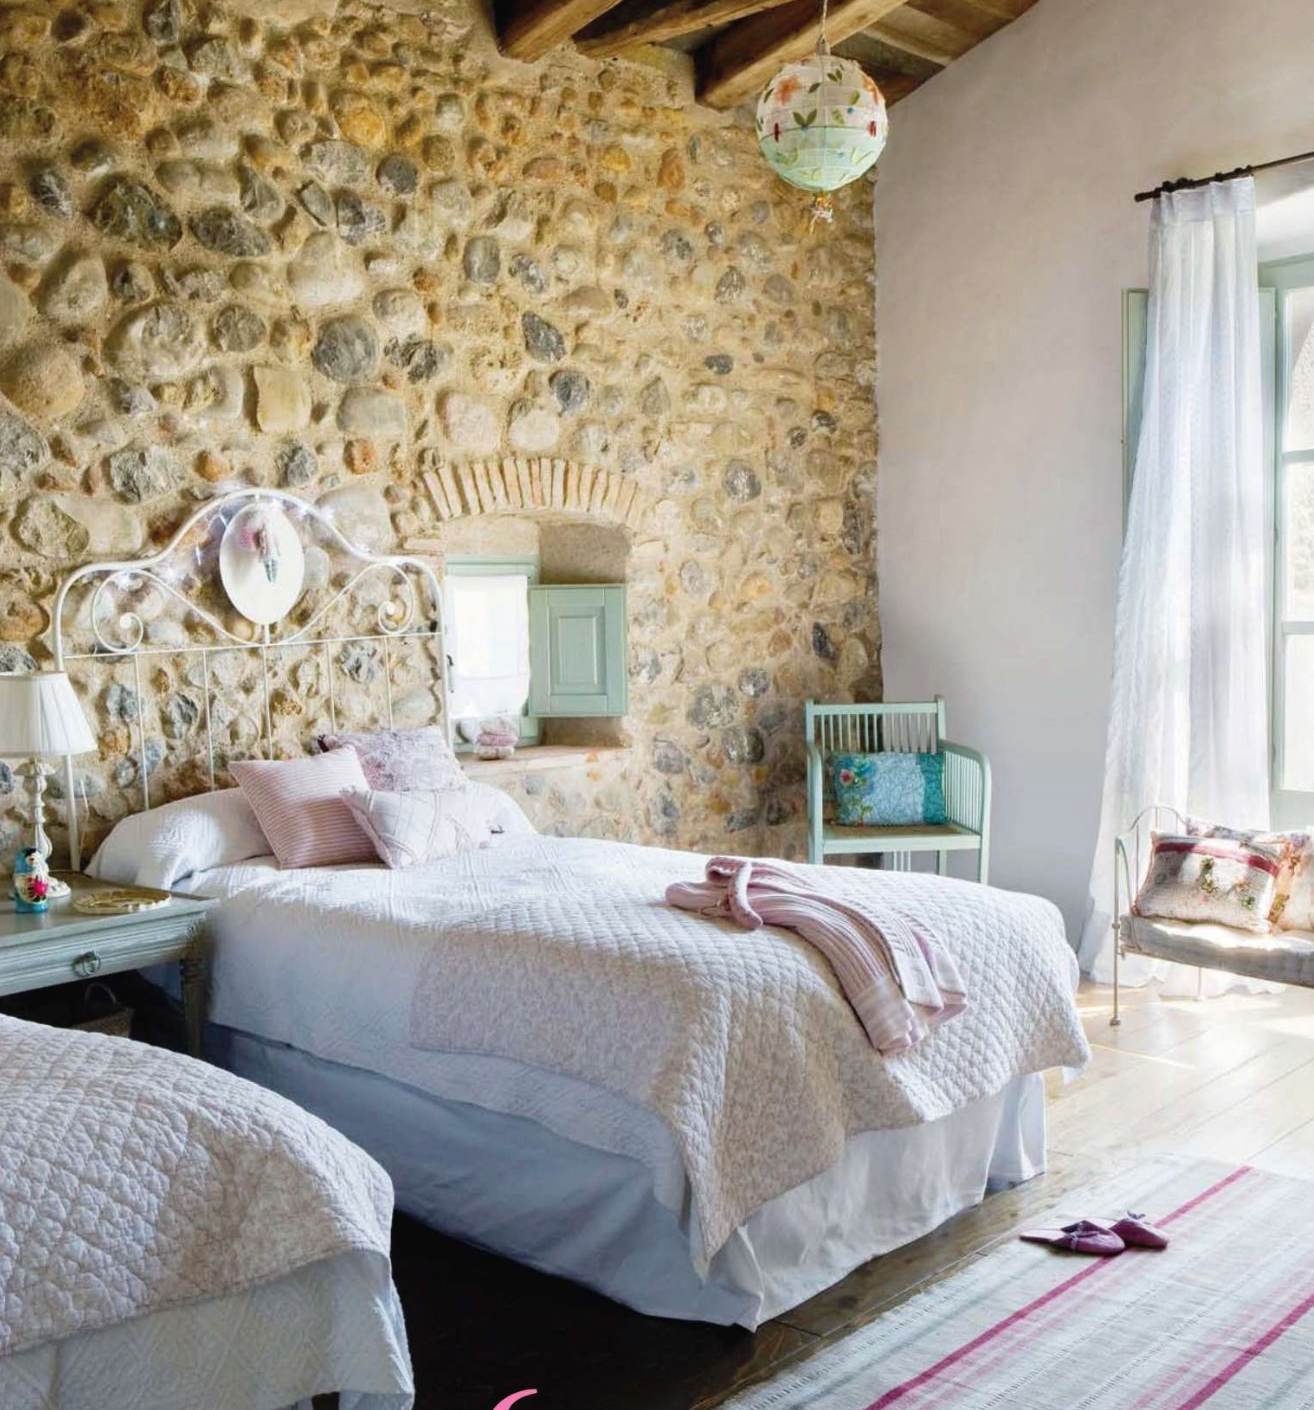 Exposed Stone Walls in Interior Design 13 Decorating Tips